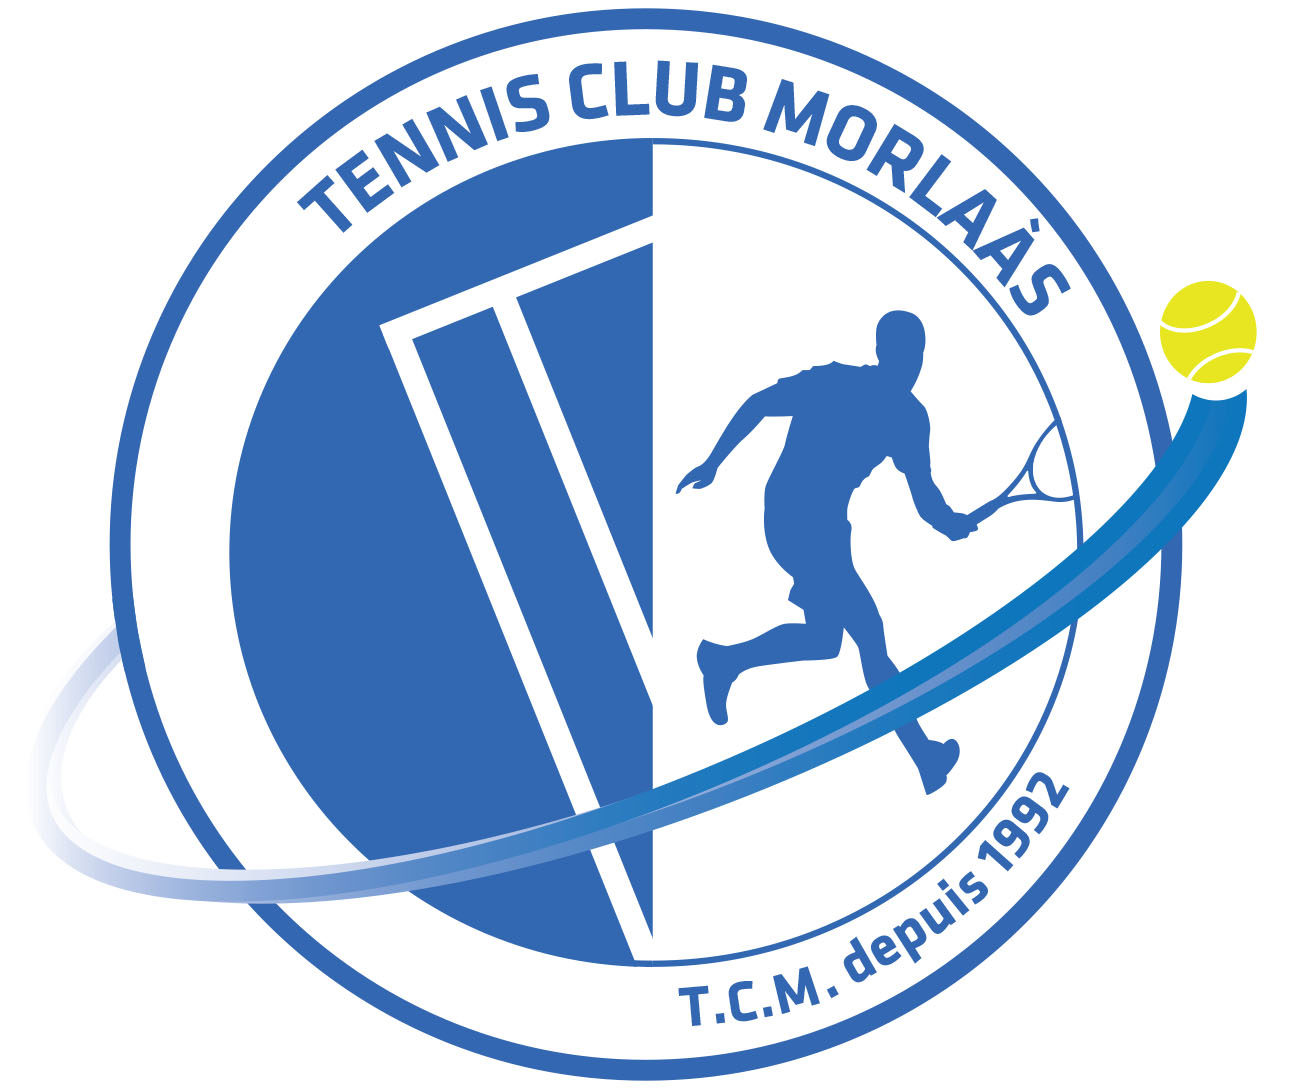 Le site officiel du Tennis Club de Morlaàs